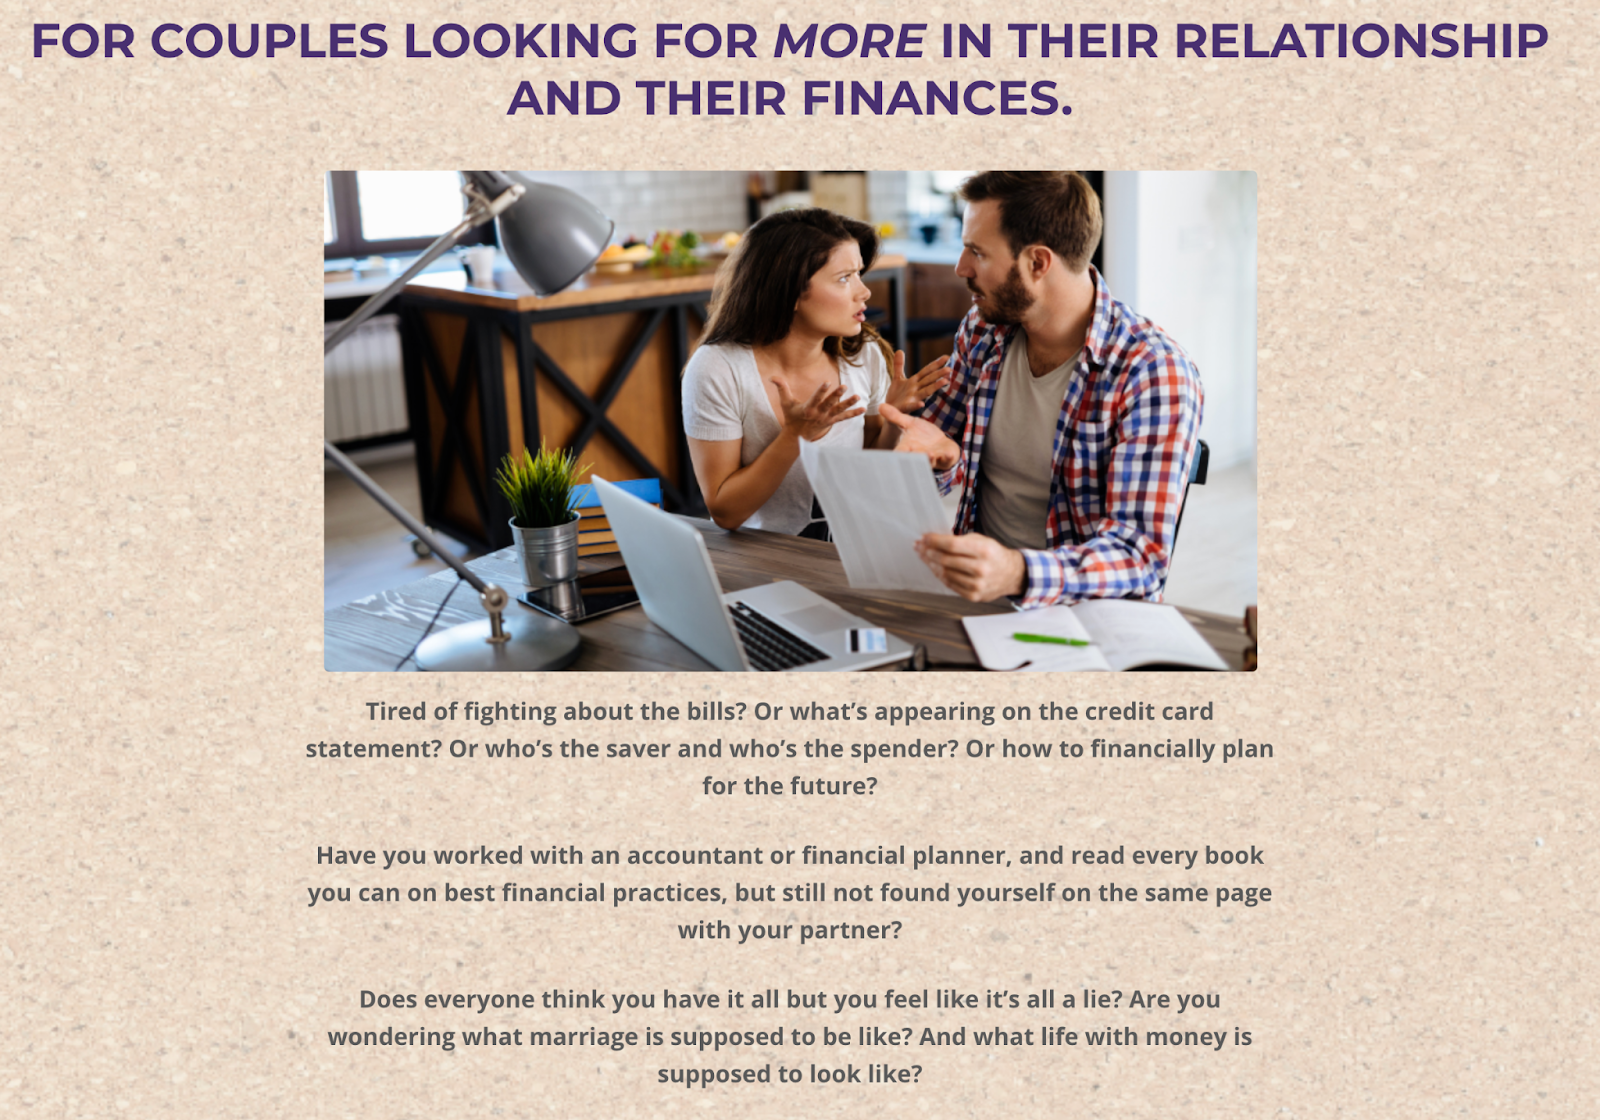 Screenshot of the Healthy Love and Money website with an image of a couple discussing bills on a brown background